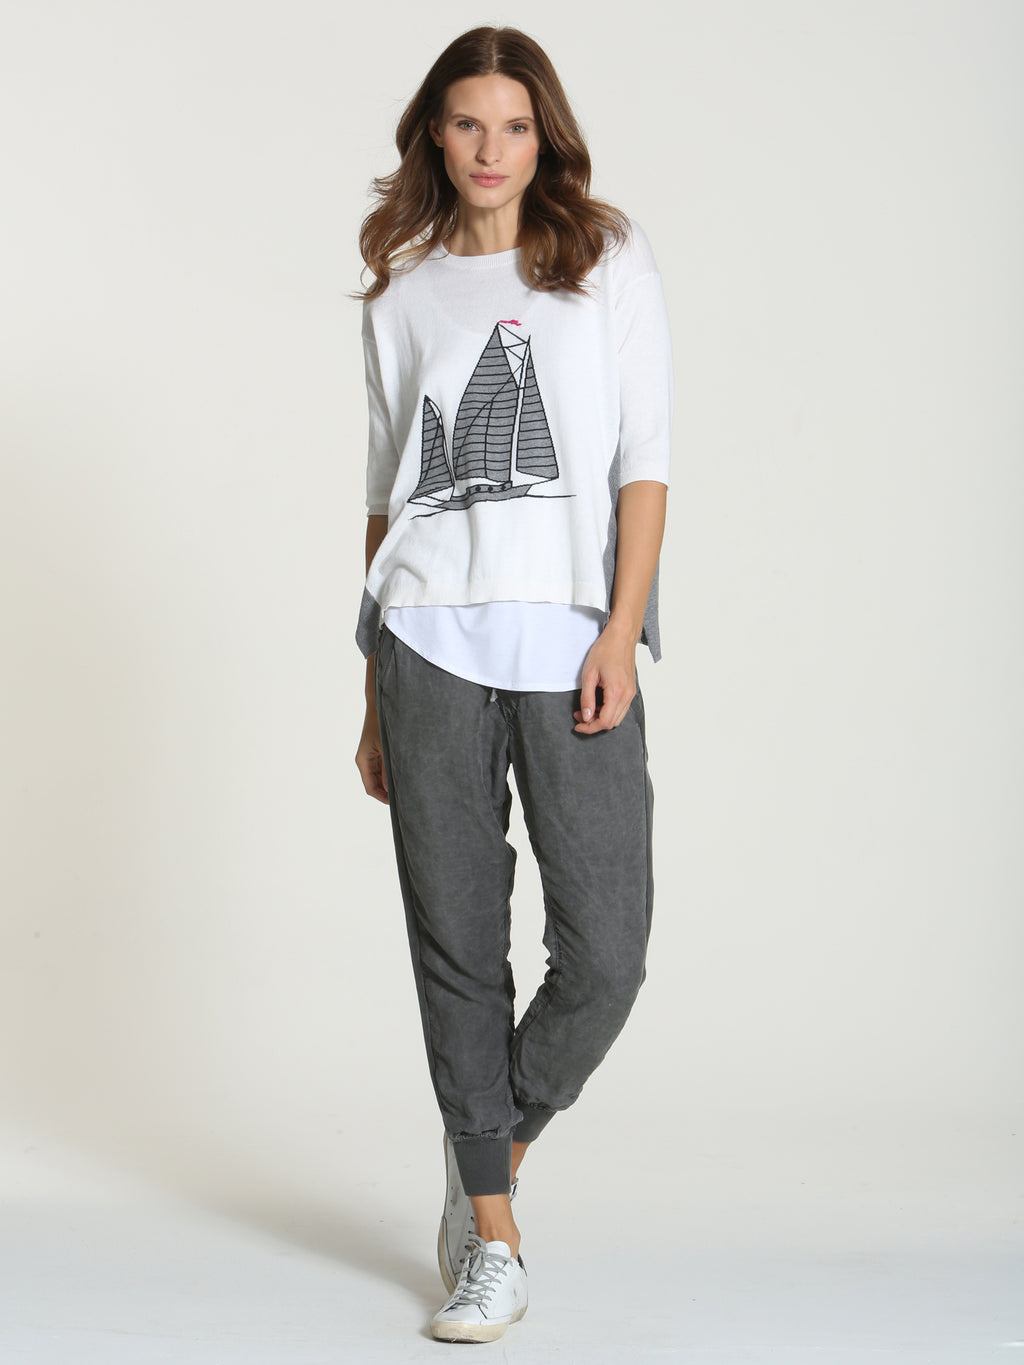 Cool Sailboat Tee - White